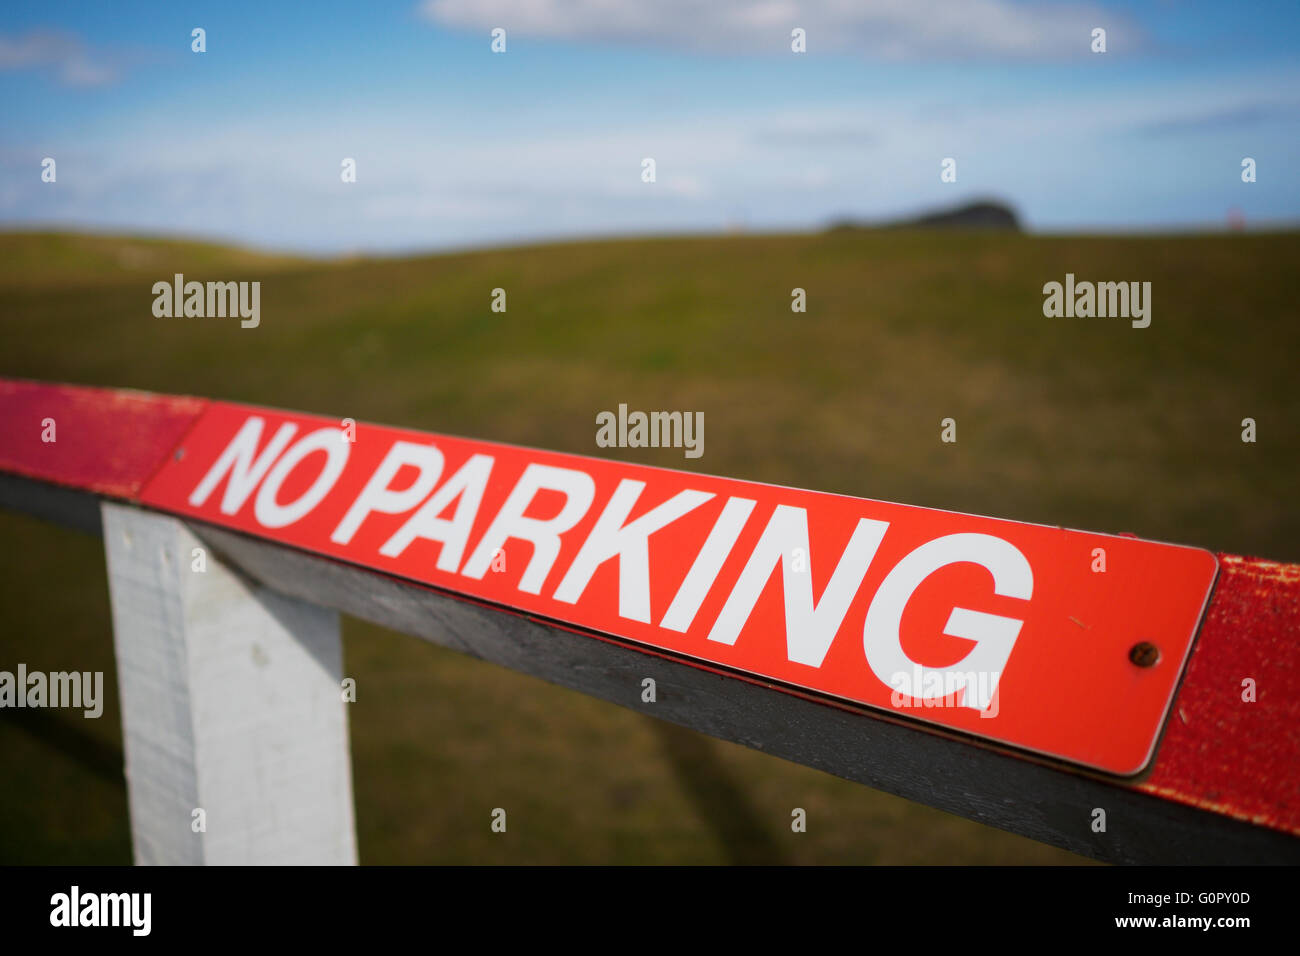 A red no parking sign on a wooden fence. - Stock Image